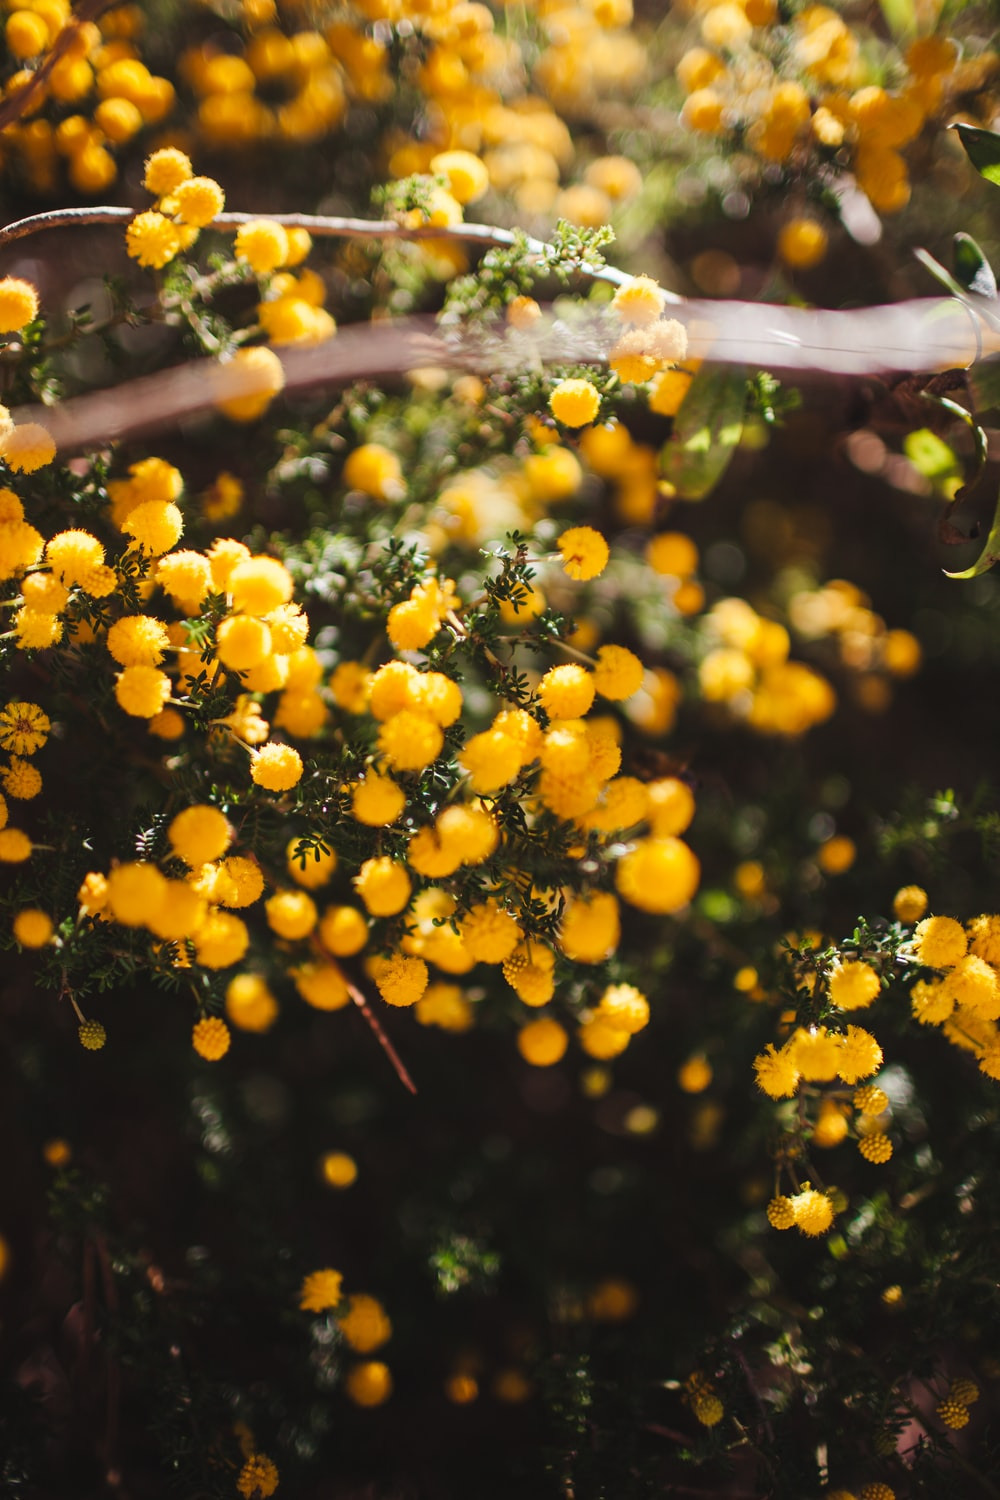 yellow round fruits on brown stick